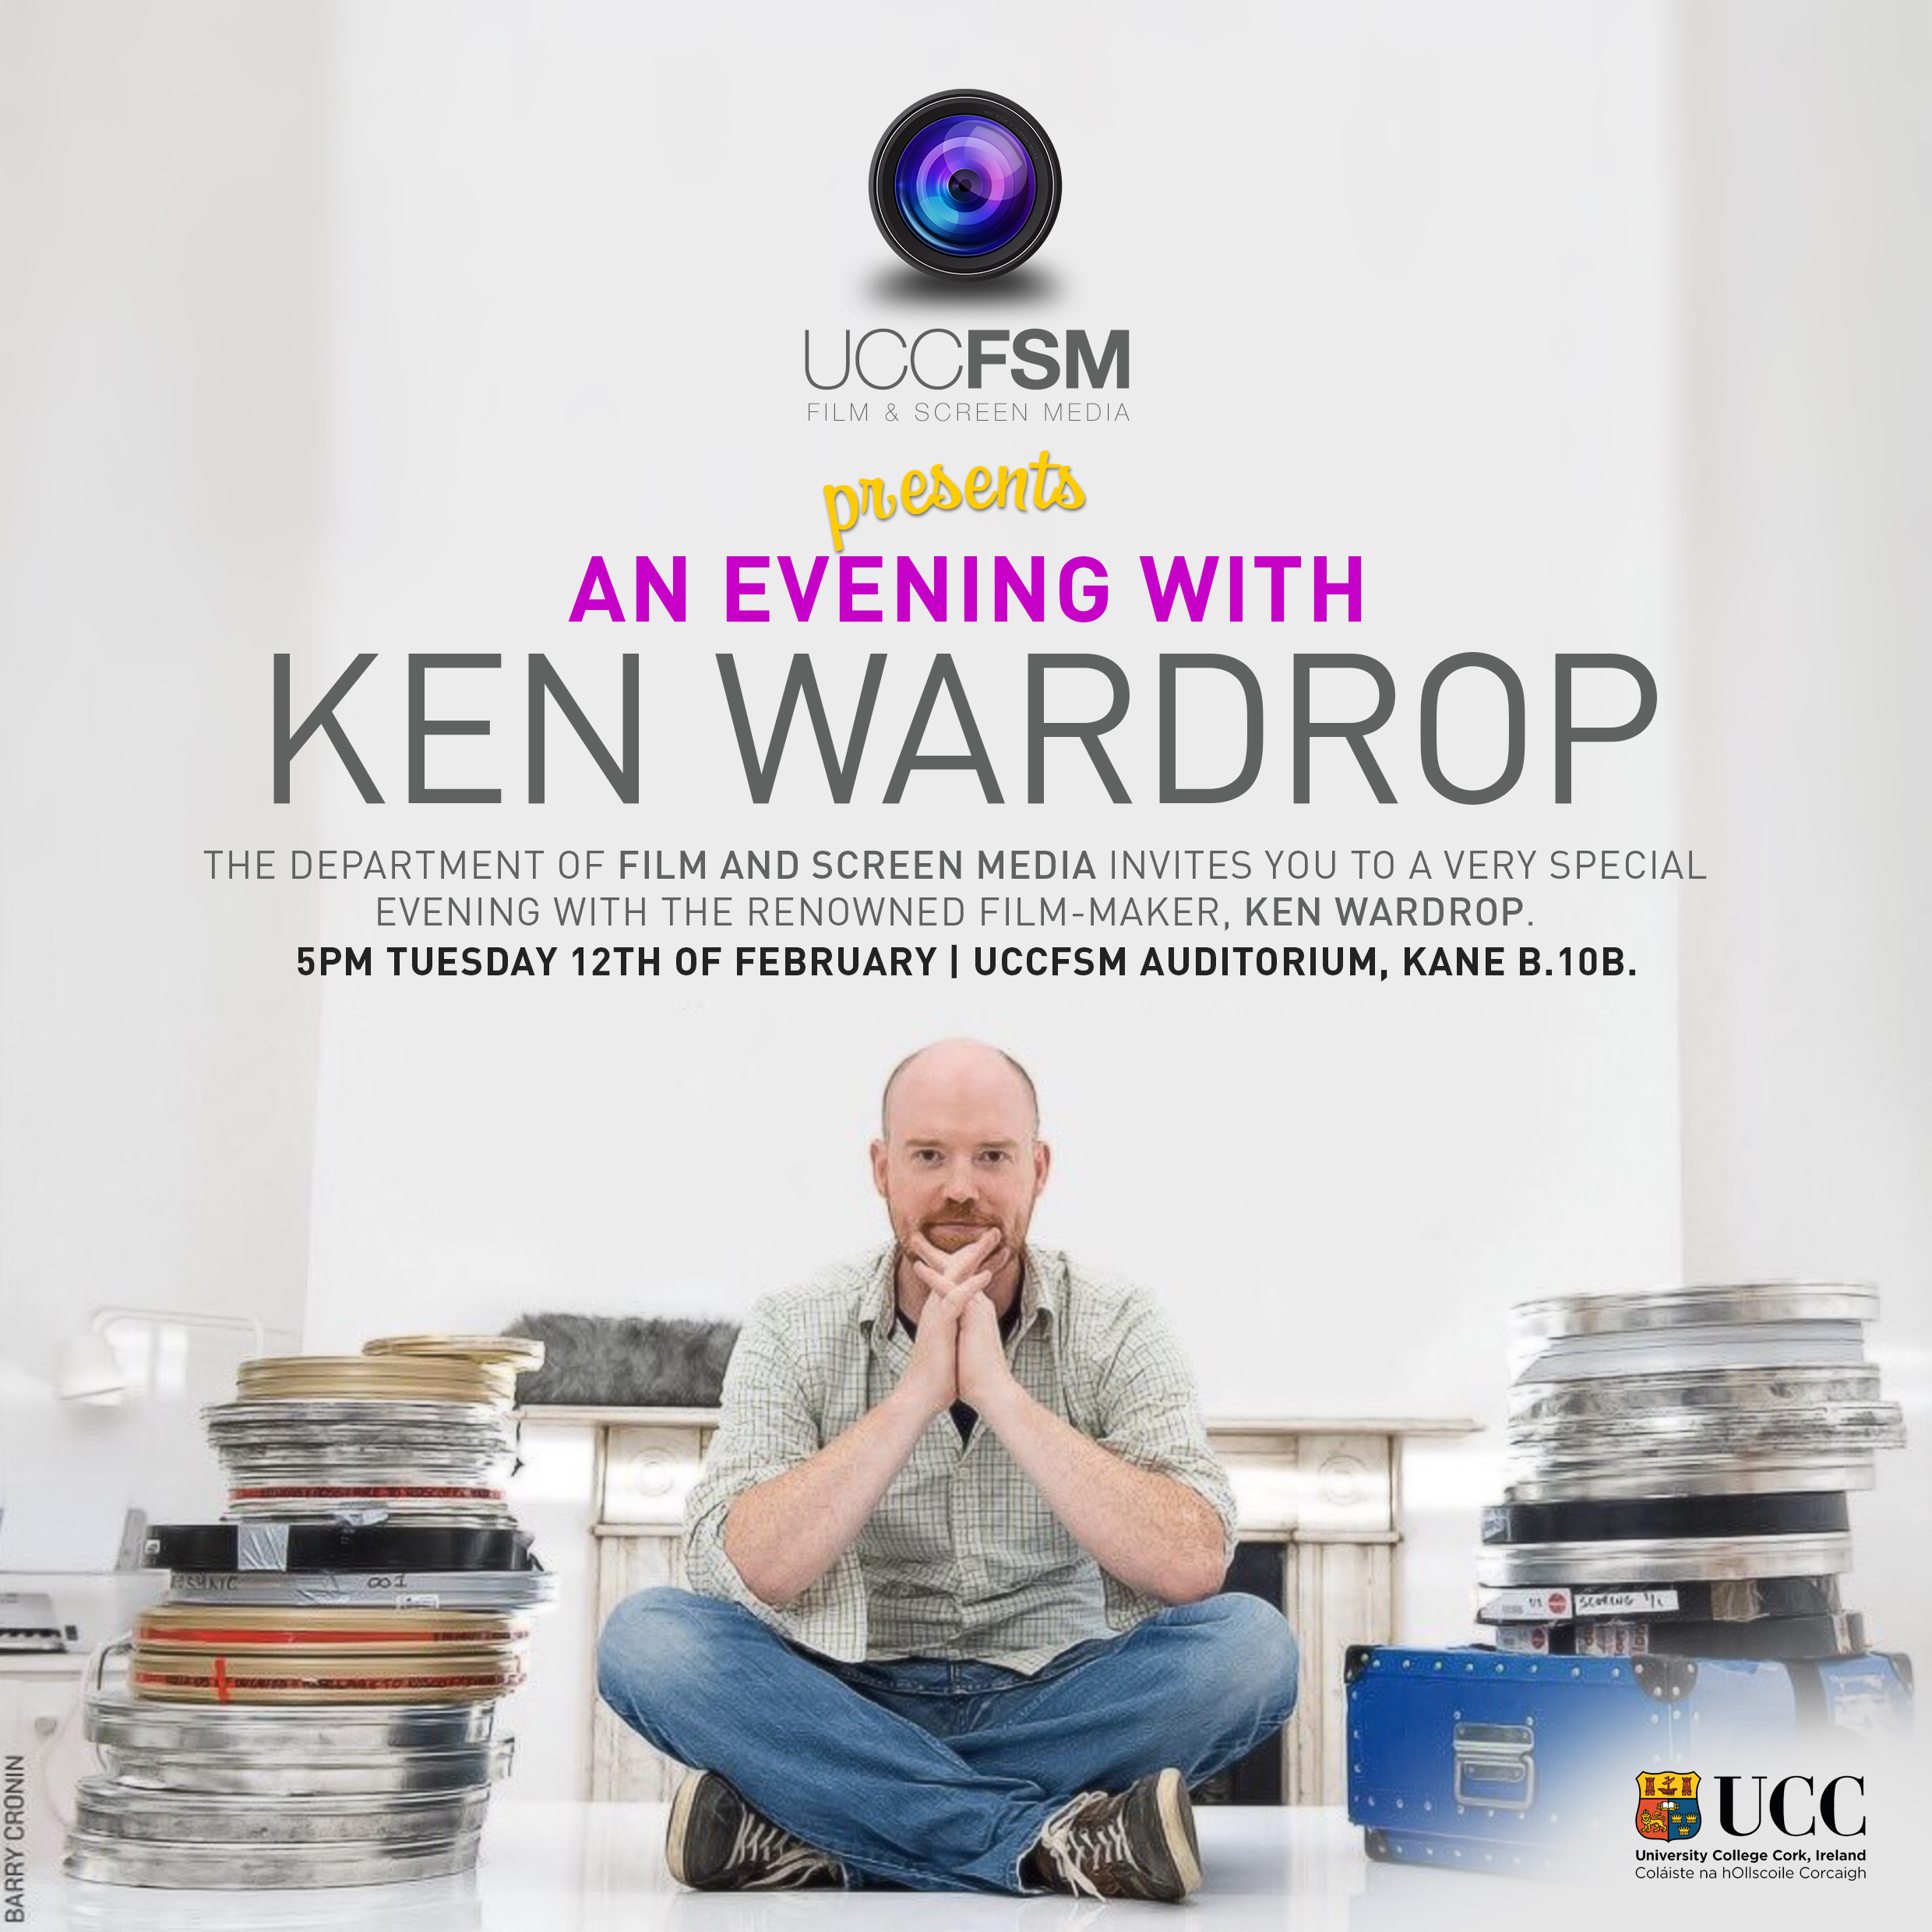 Public lecture by acclaimed director Ken Wardrop. Tues 5pm, UCC.